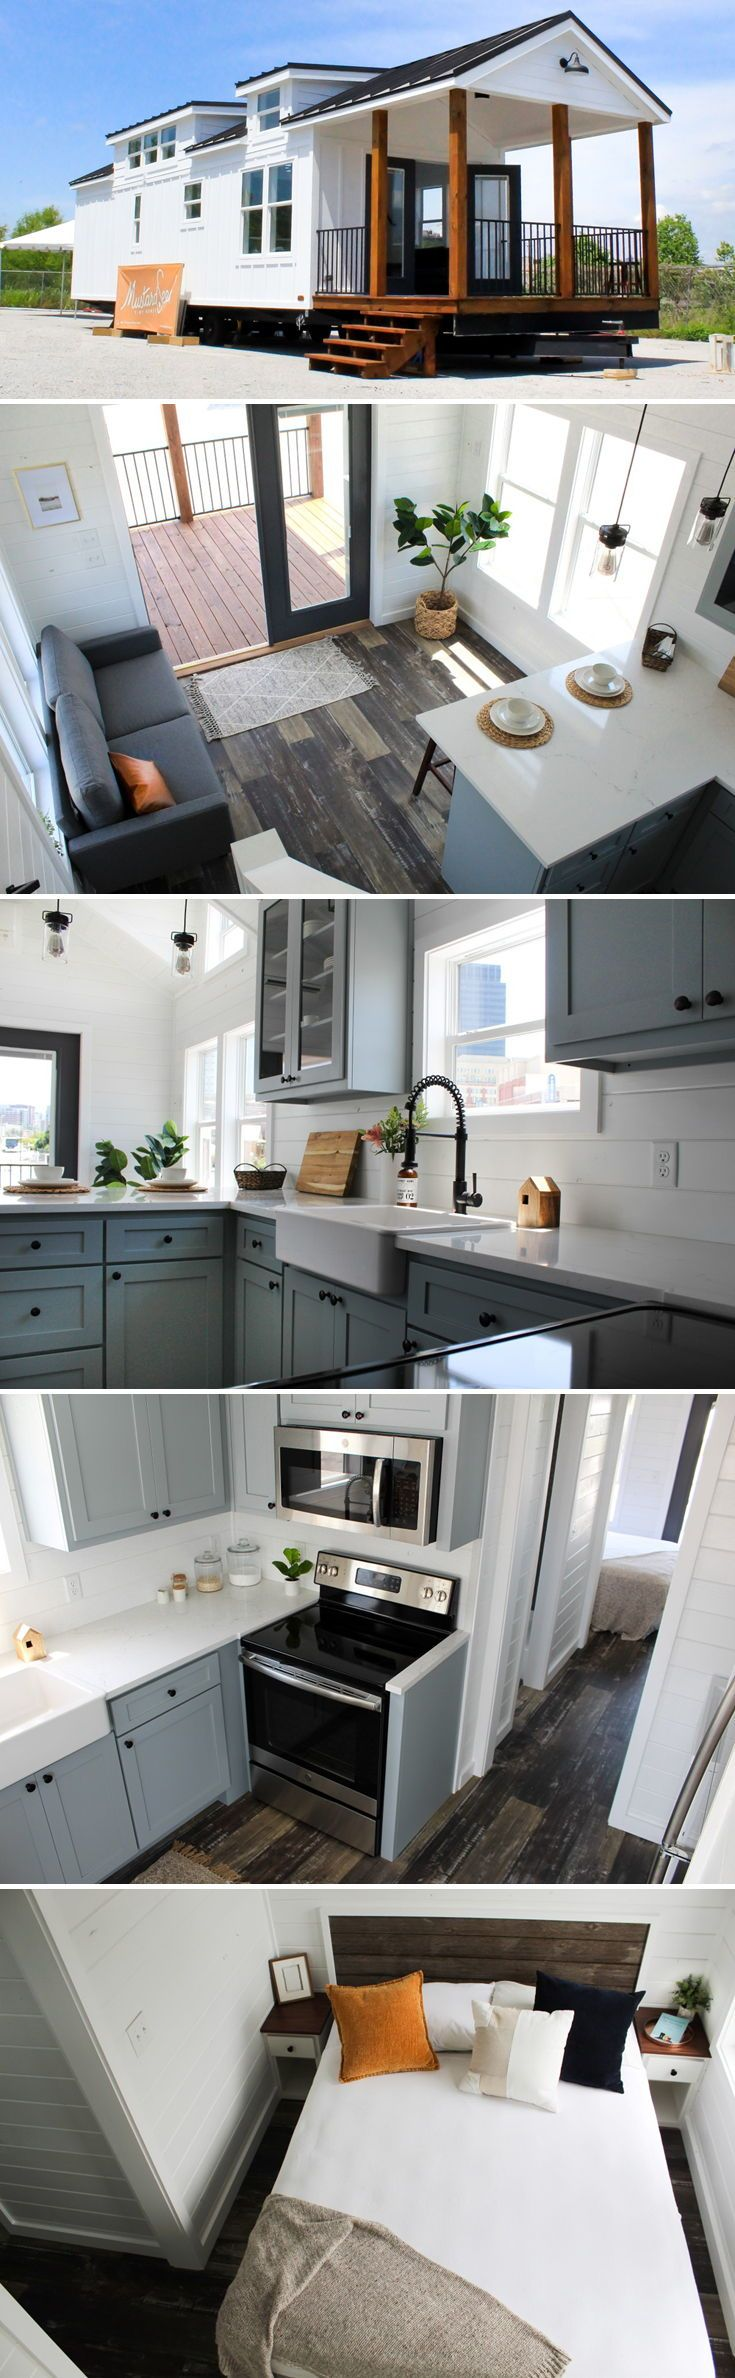 Zion by Mustard Seed Tiny Homes